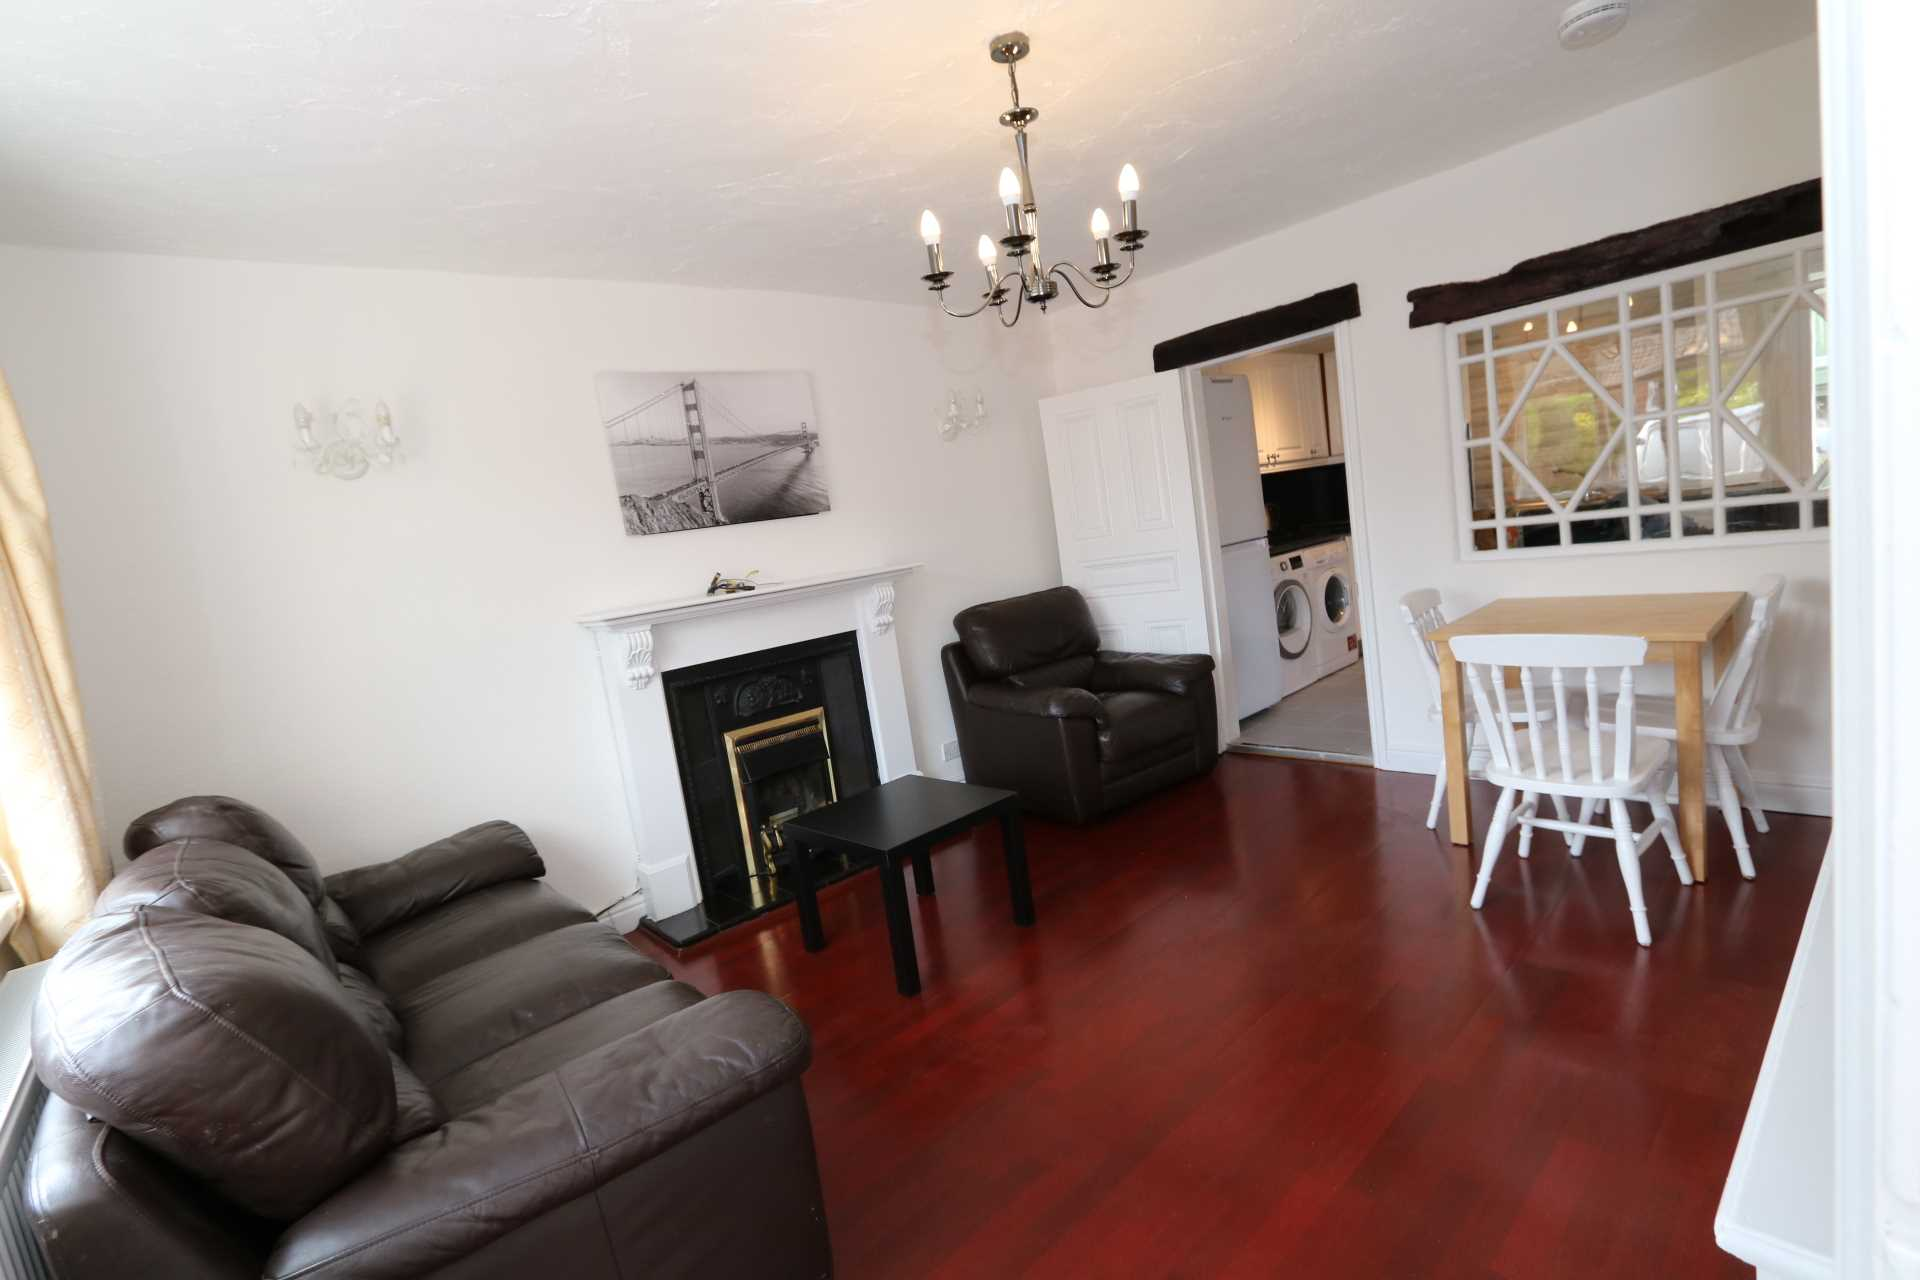 Cornwall Road - 4 bedroom student home fully furnished, WIFI & bills included - NO FEES, Image 5